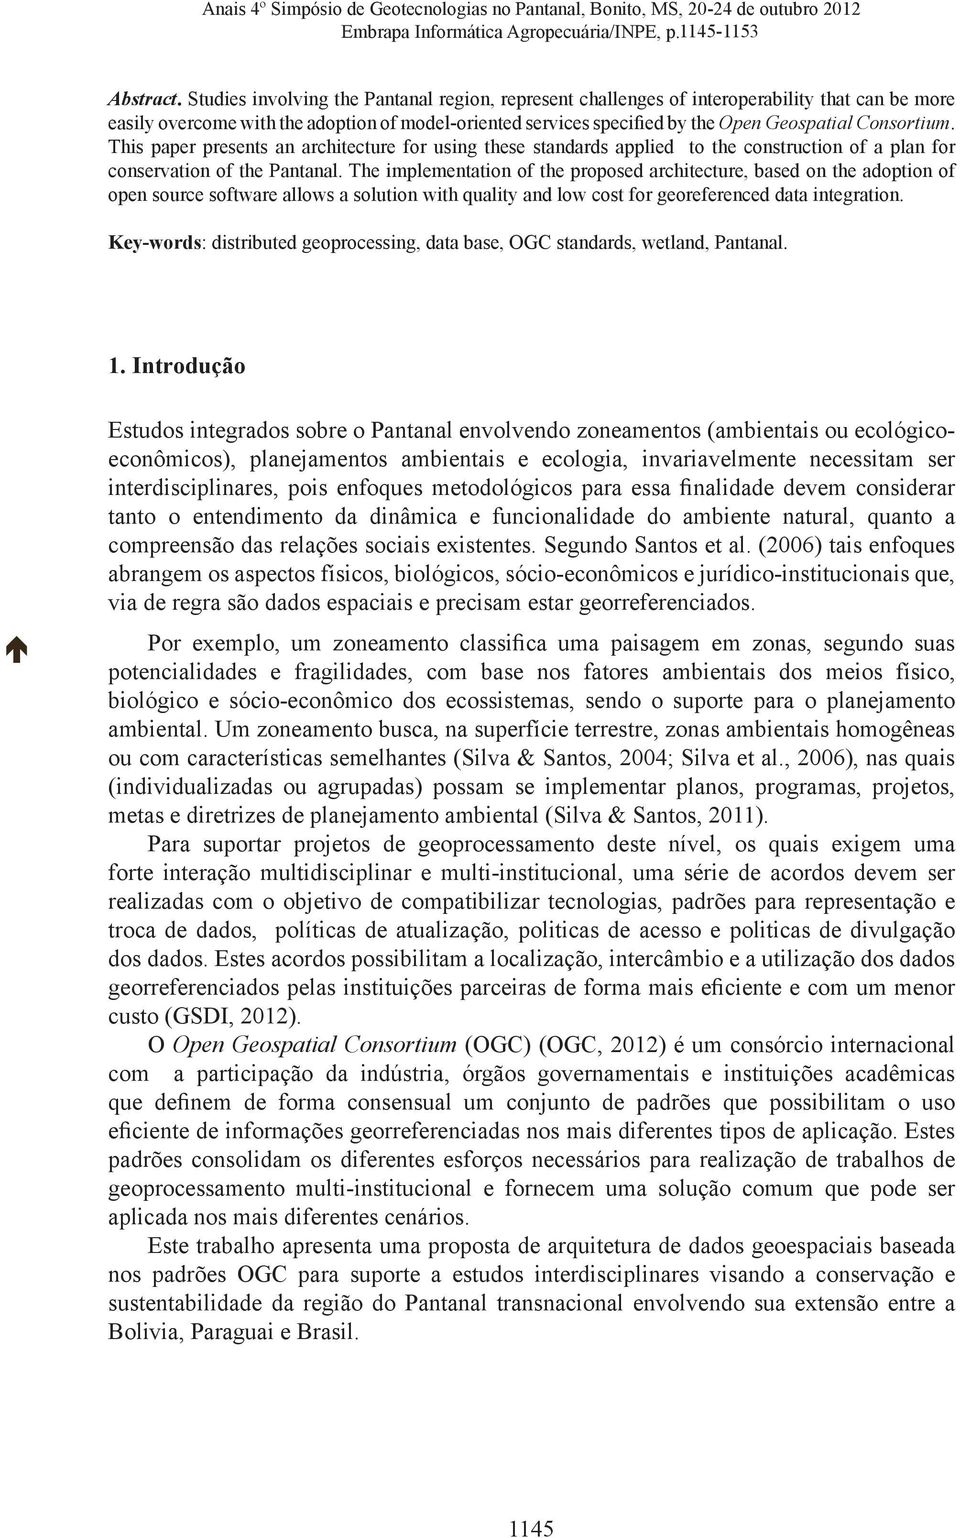 Consortium. This paper presents an architecture for using these standards applied to the construction of a plan for conservation of the Pantanal.